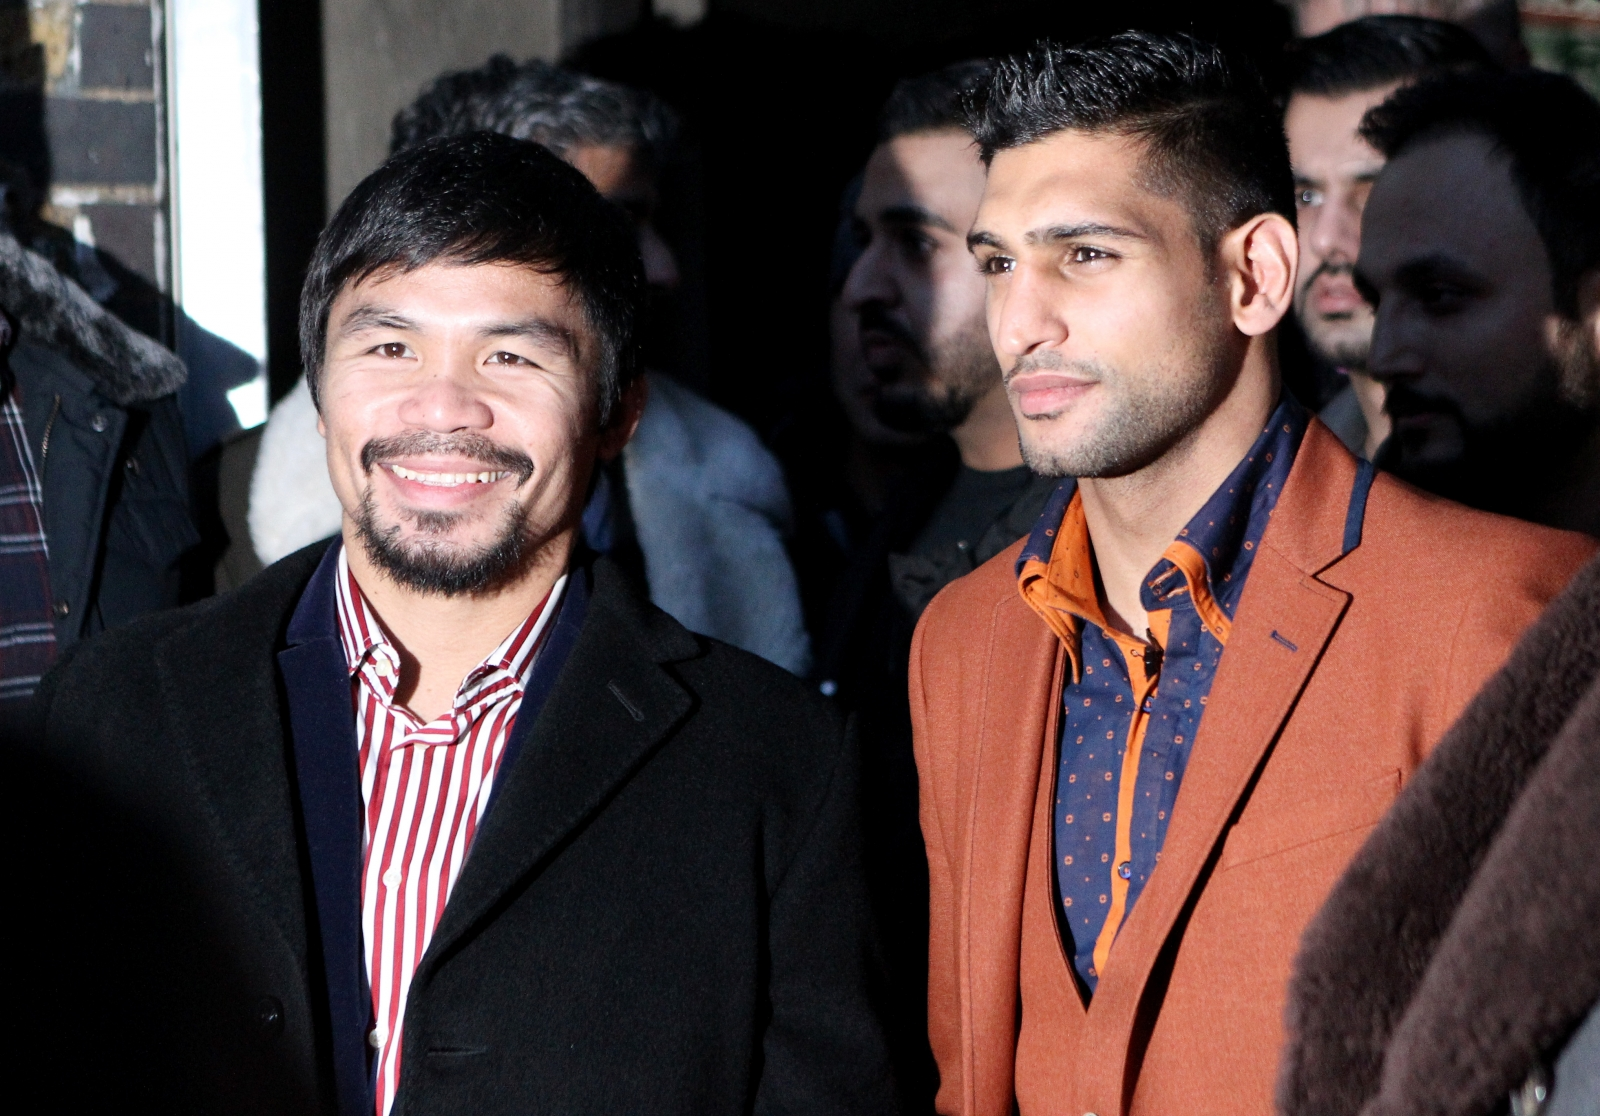 Arum: Pacquiao-Khan rumors are total BS